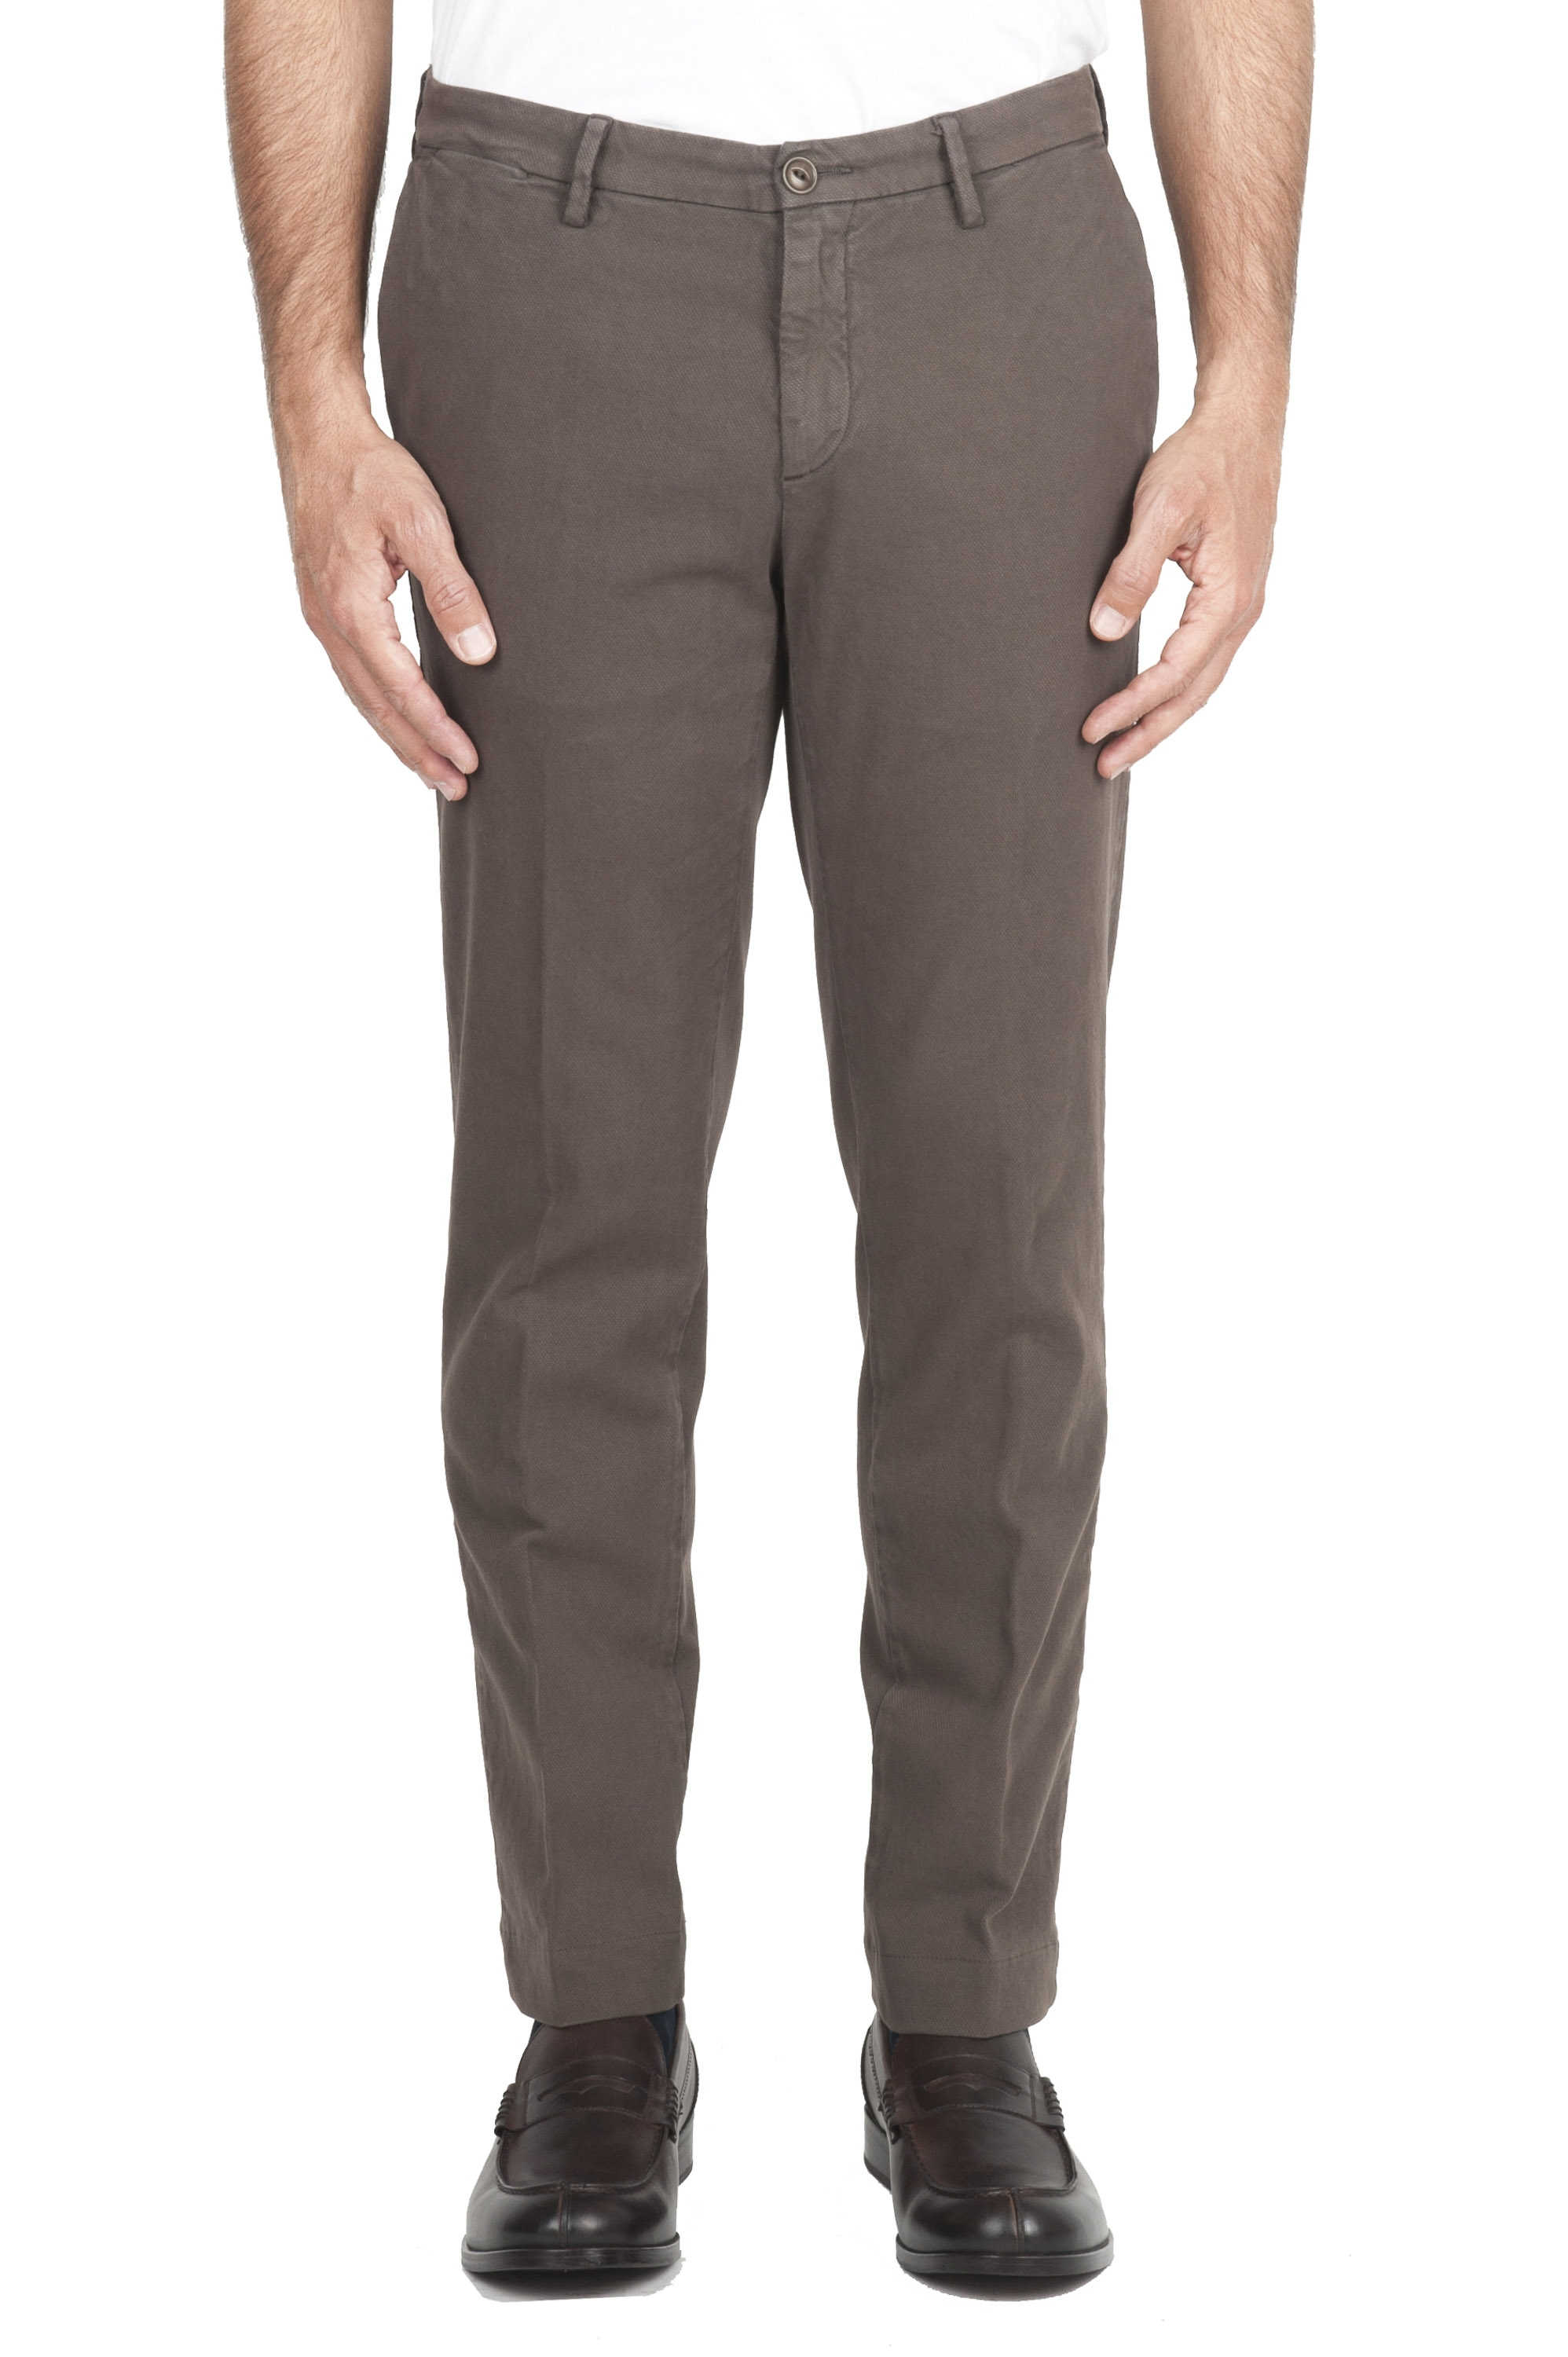 SBU 01539_19AW Pantalon chino classique en coton stretch marron 01